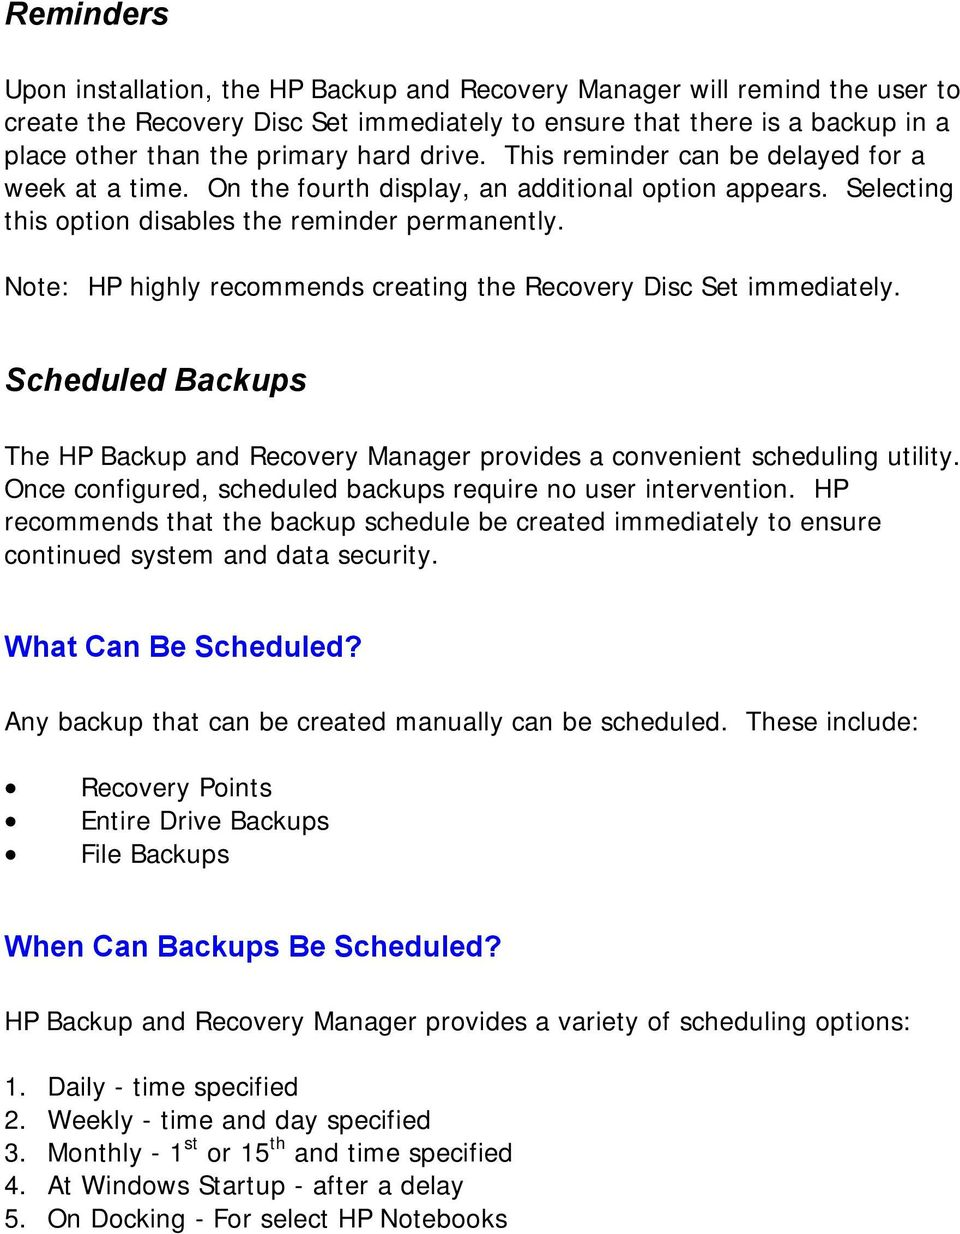 Note: HP highly recommends creating the Recovery Disc Set immediately. Scheduled Backups The HP Backup and Recovery Manager provides a convenient scheduling utility.